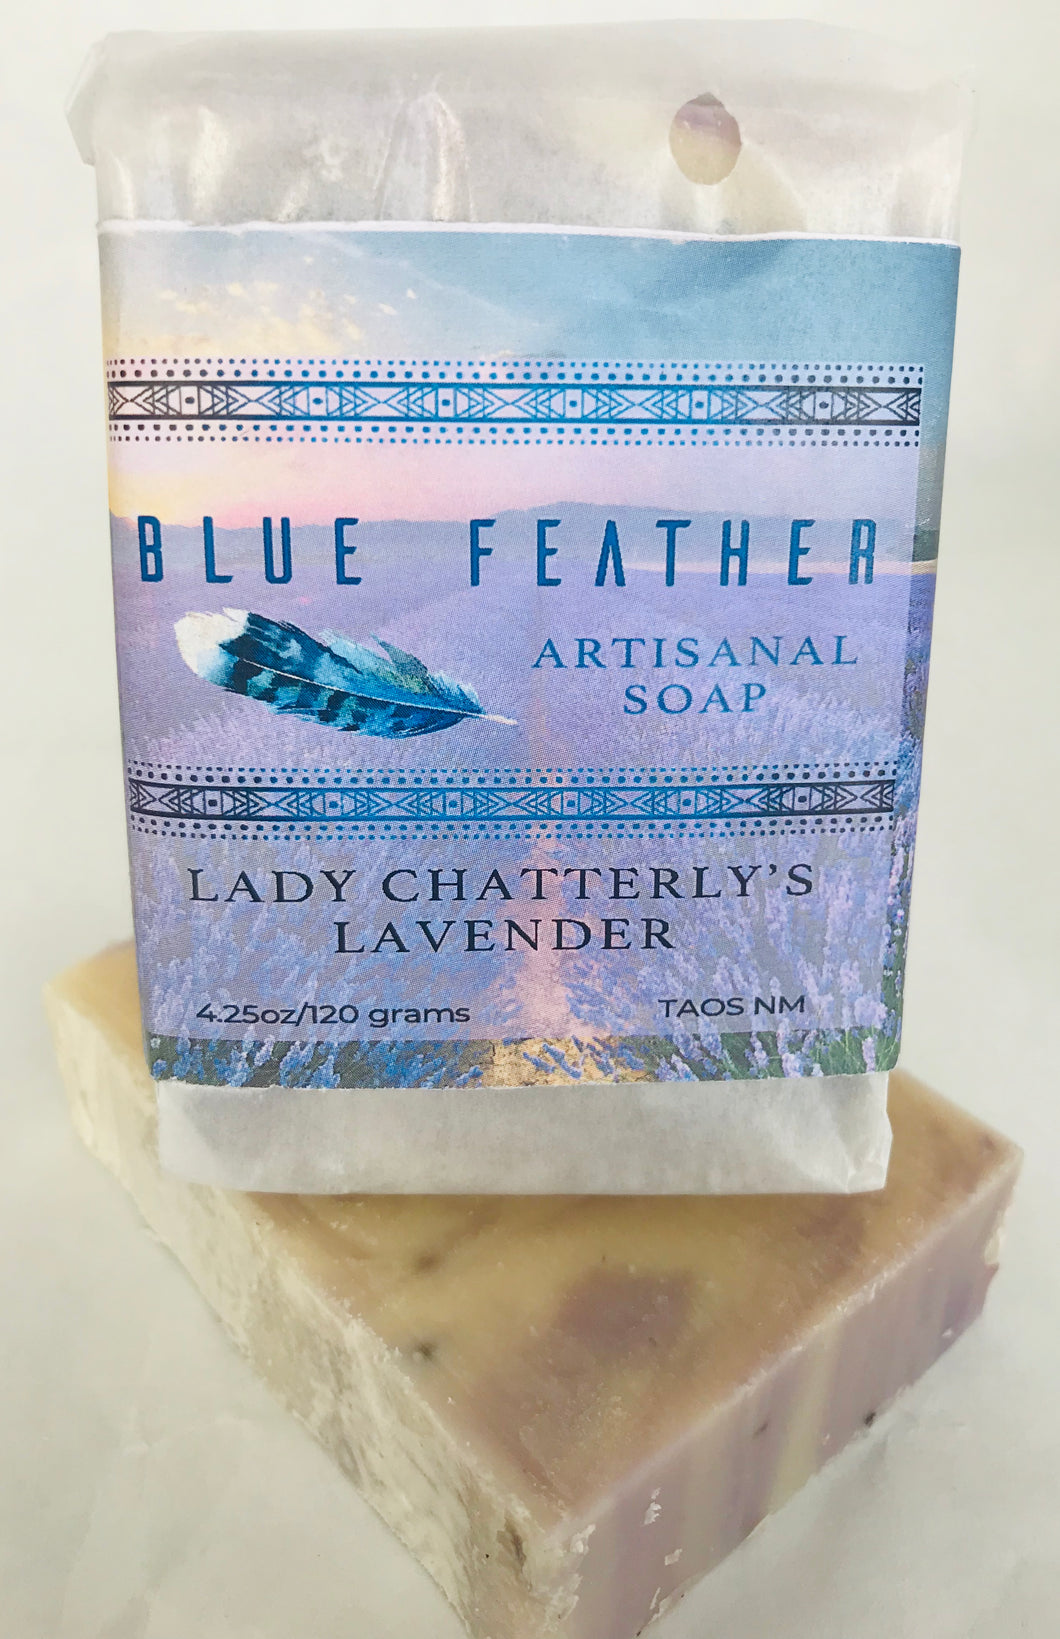 Lady Chatterly's Lavender Handmade Soap